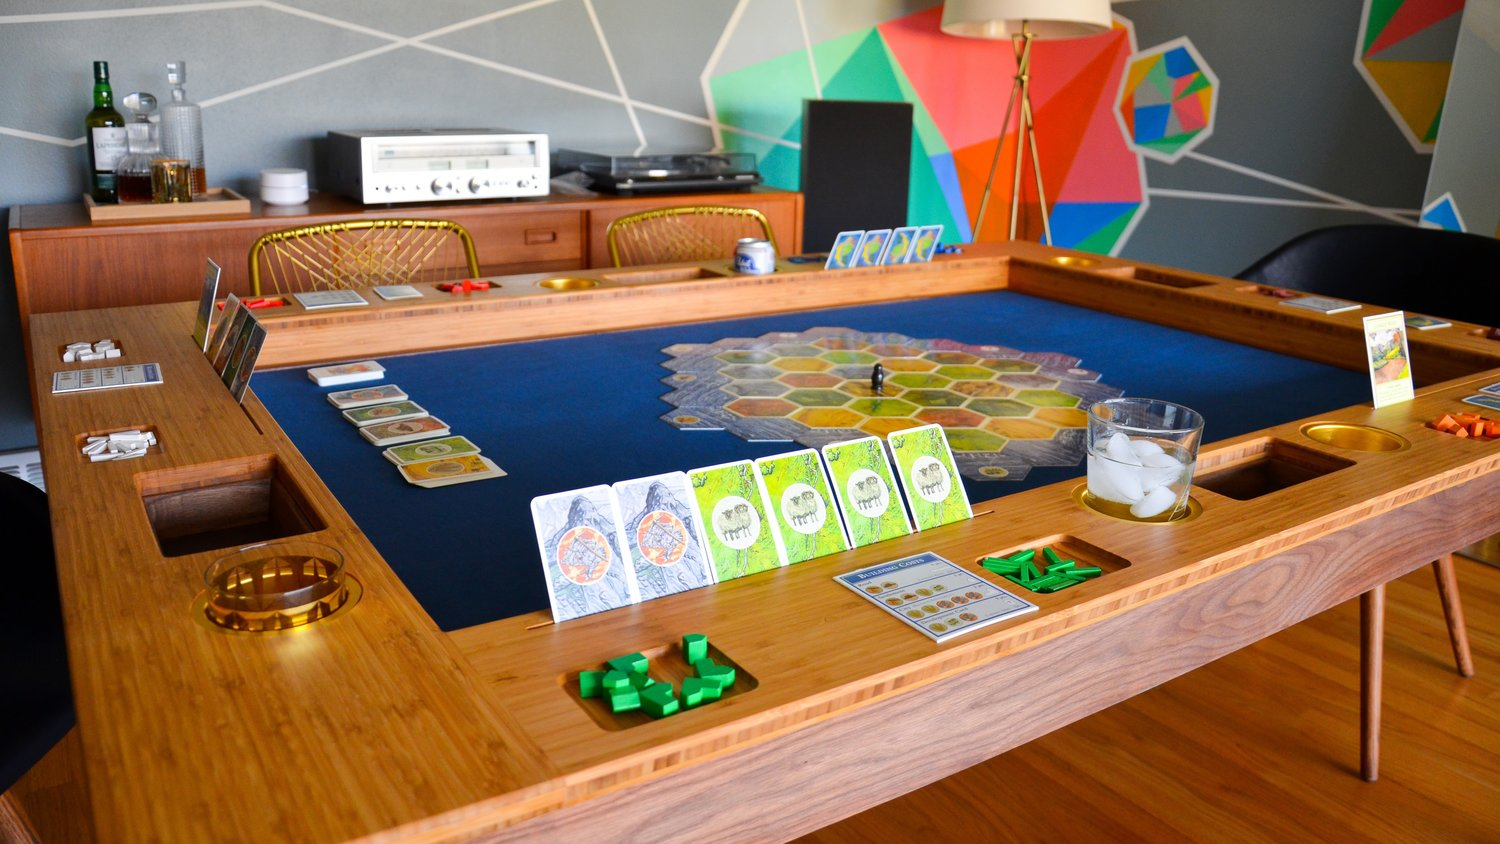 Board Gaming Table - Standard Mid-Century Modern Dresden in action